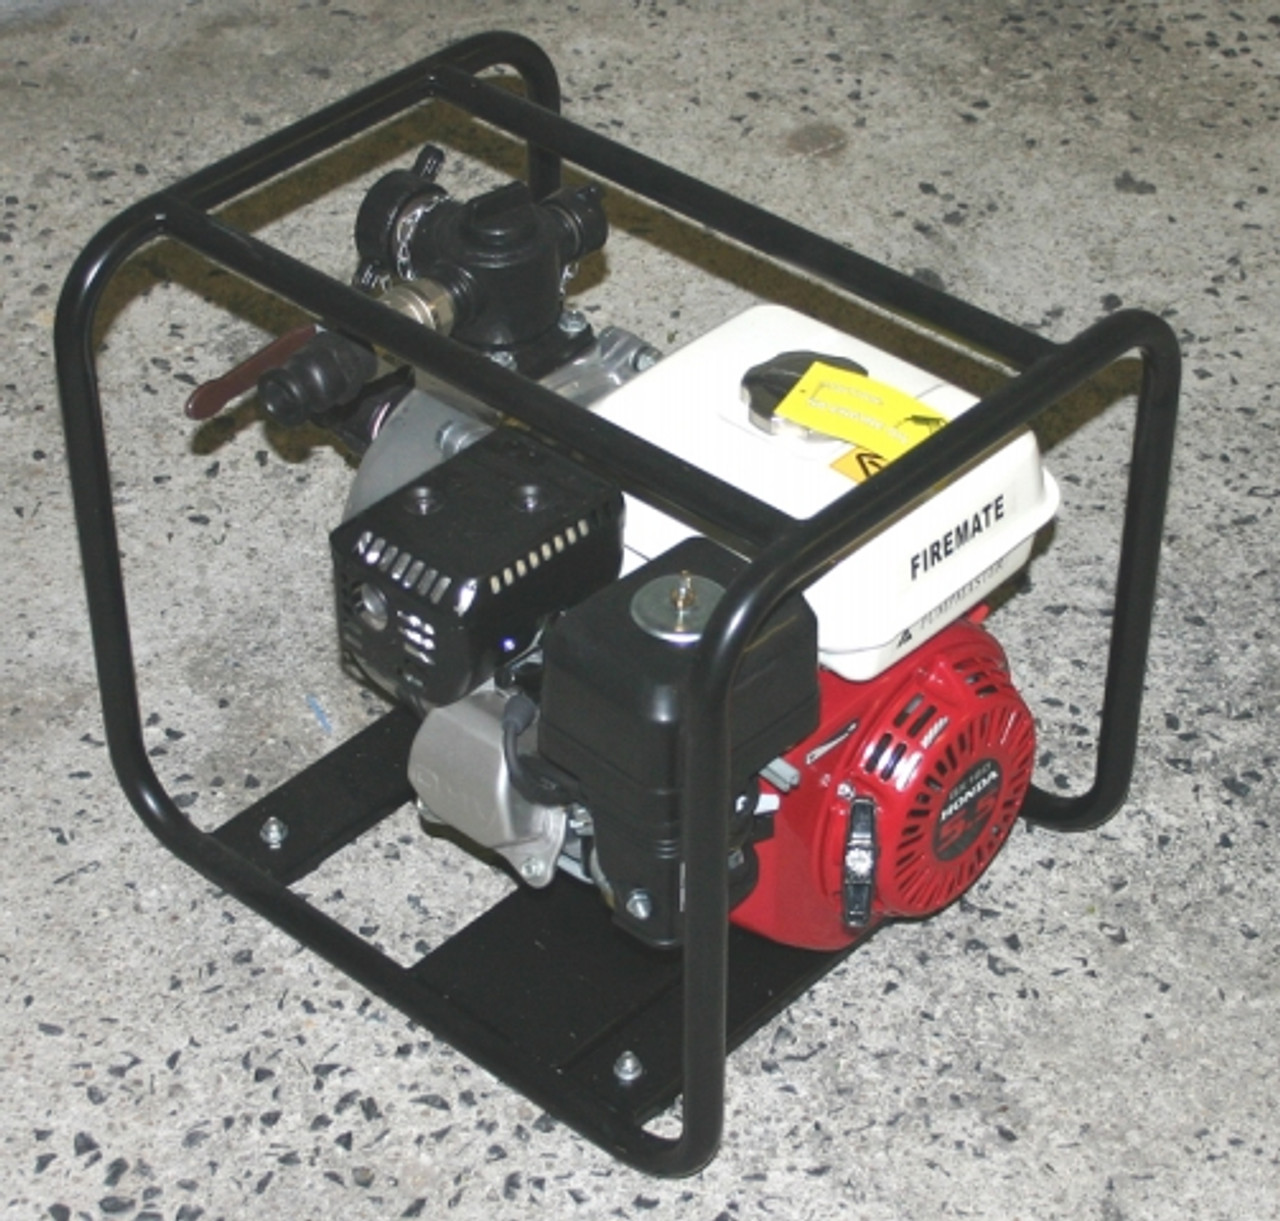 5.5 hp Honda Engine with Heavy Duty Single Impeller Fire Pump and Roll Frame and Season Special Hose Kit and Hose Reel with hose